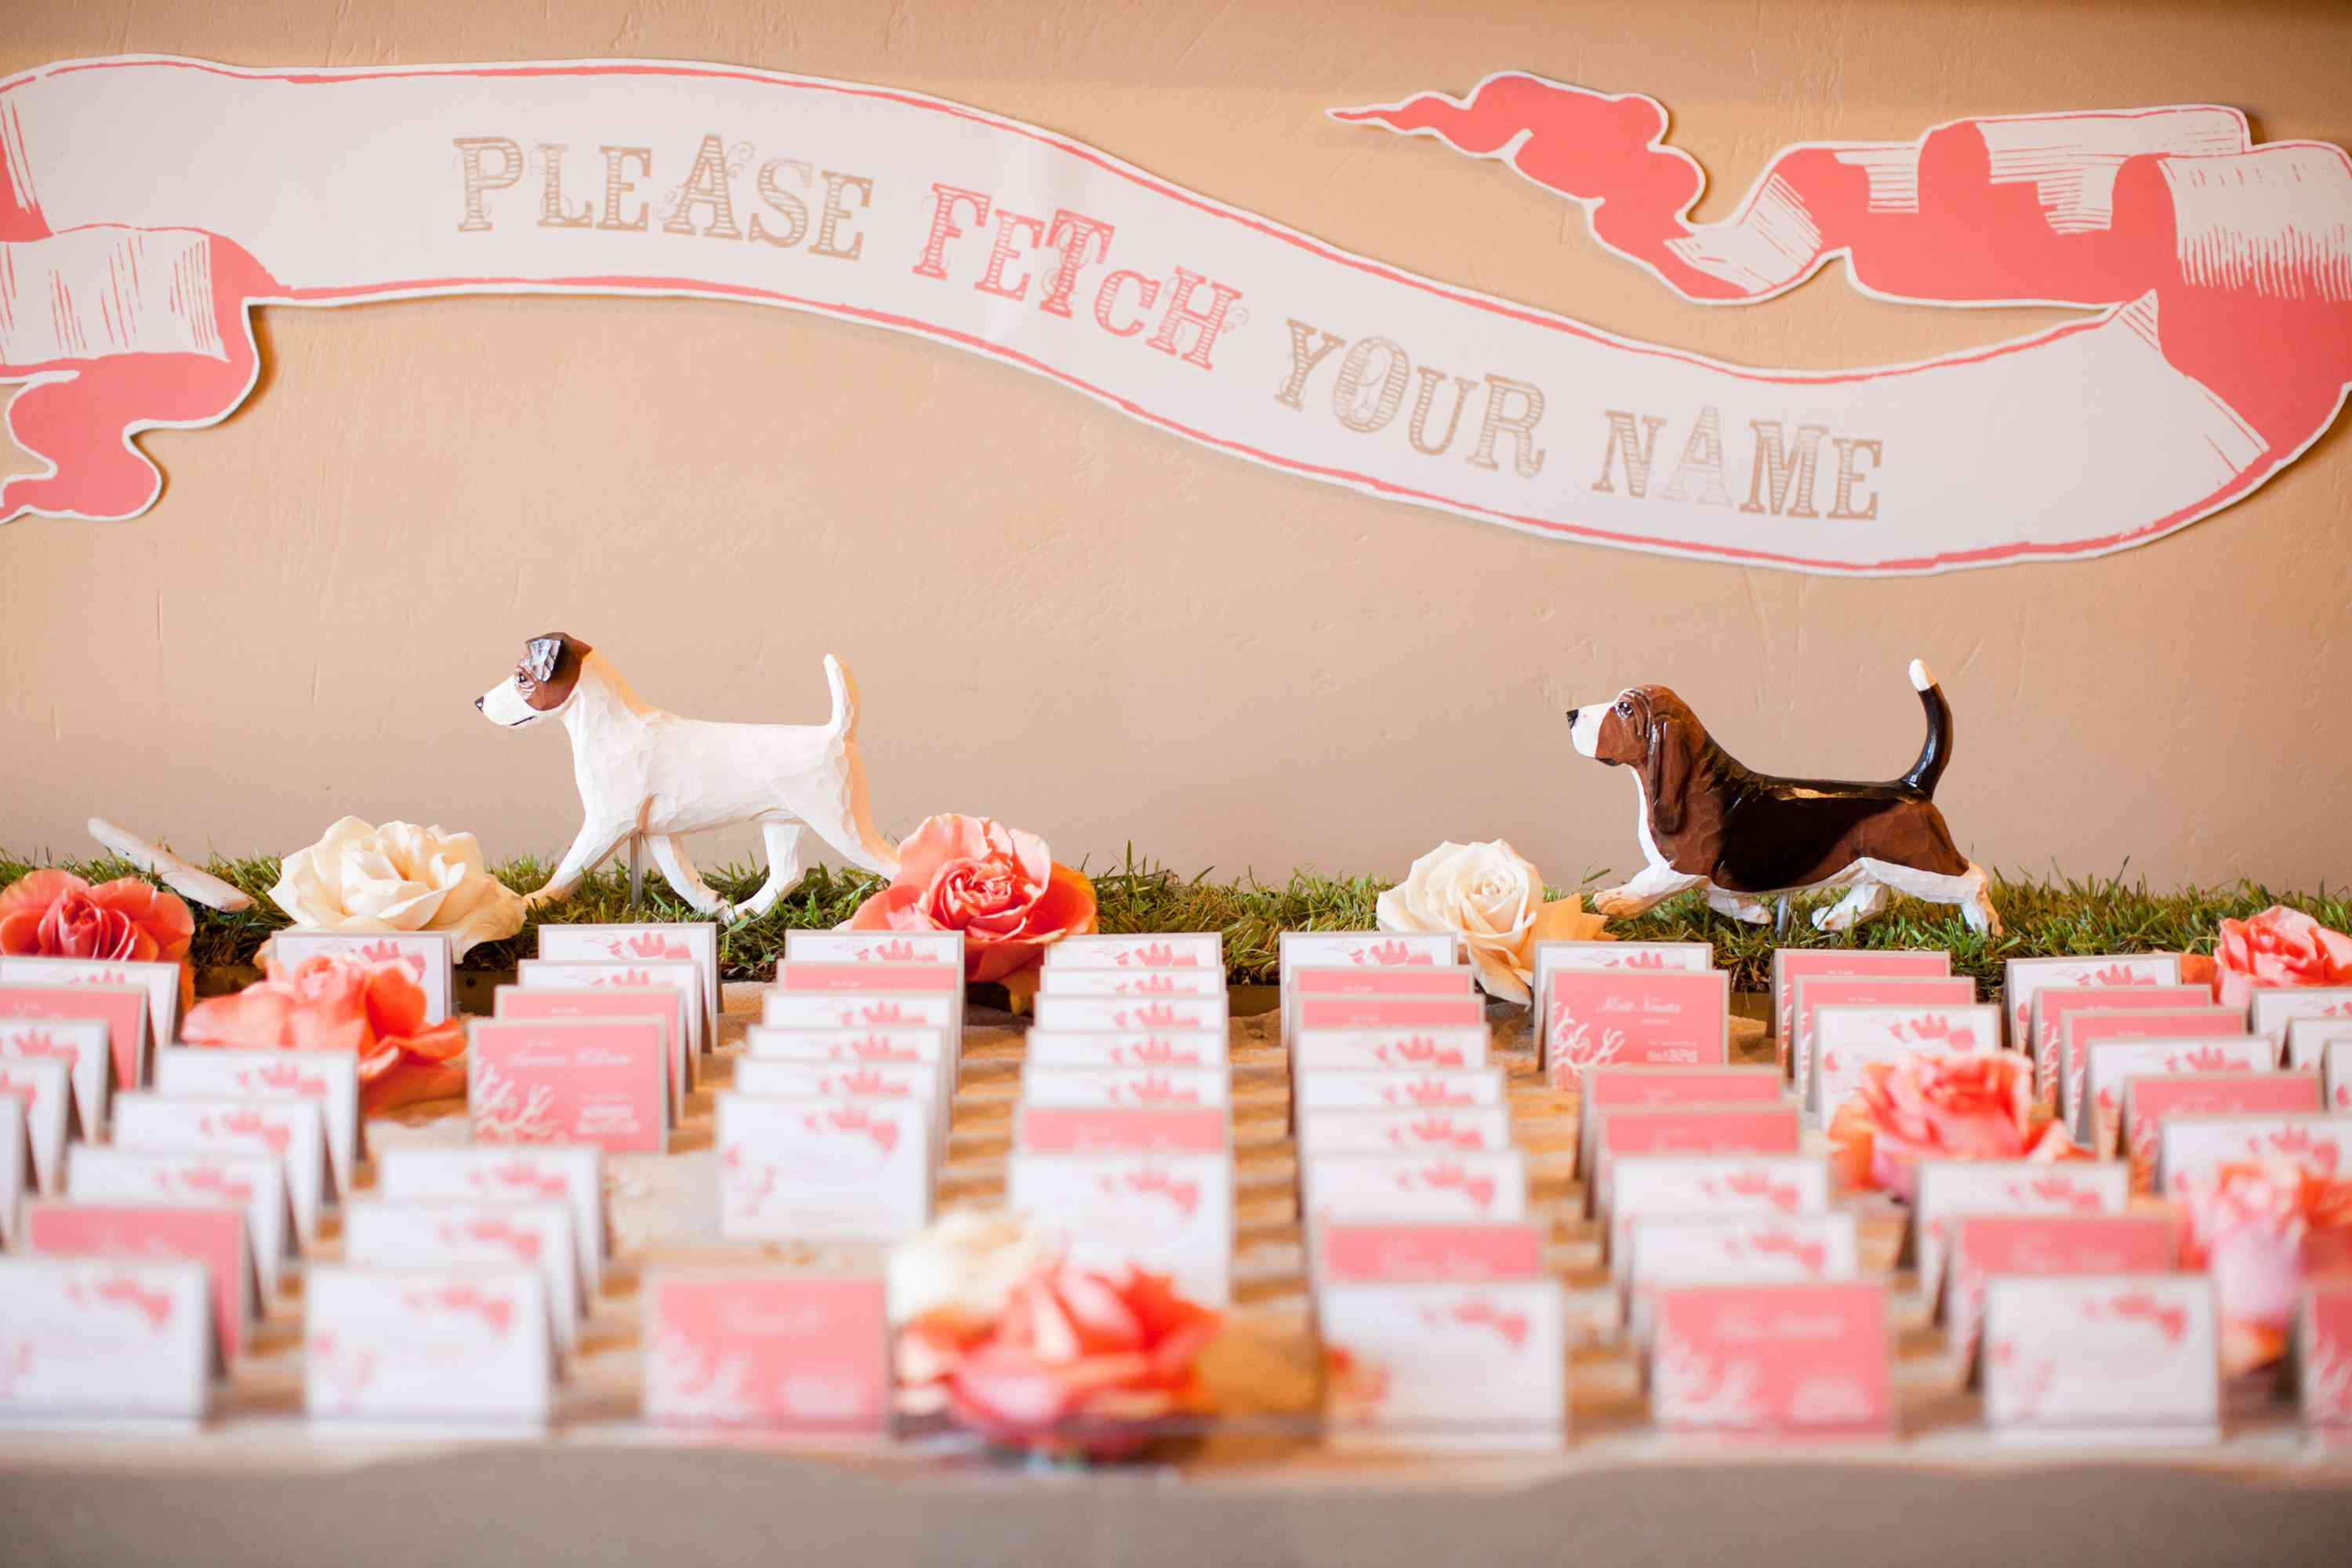 Escort card display with dogs